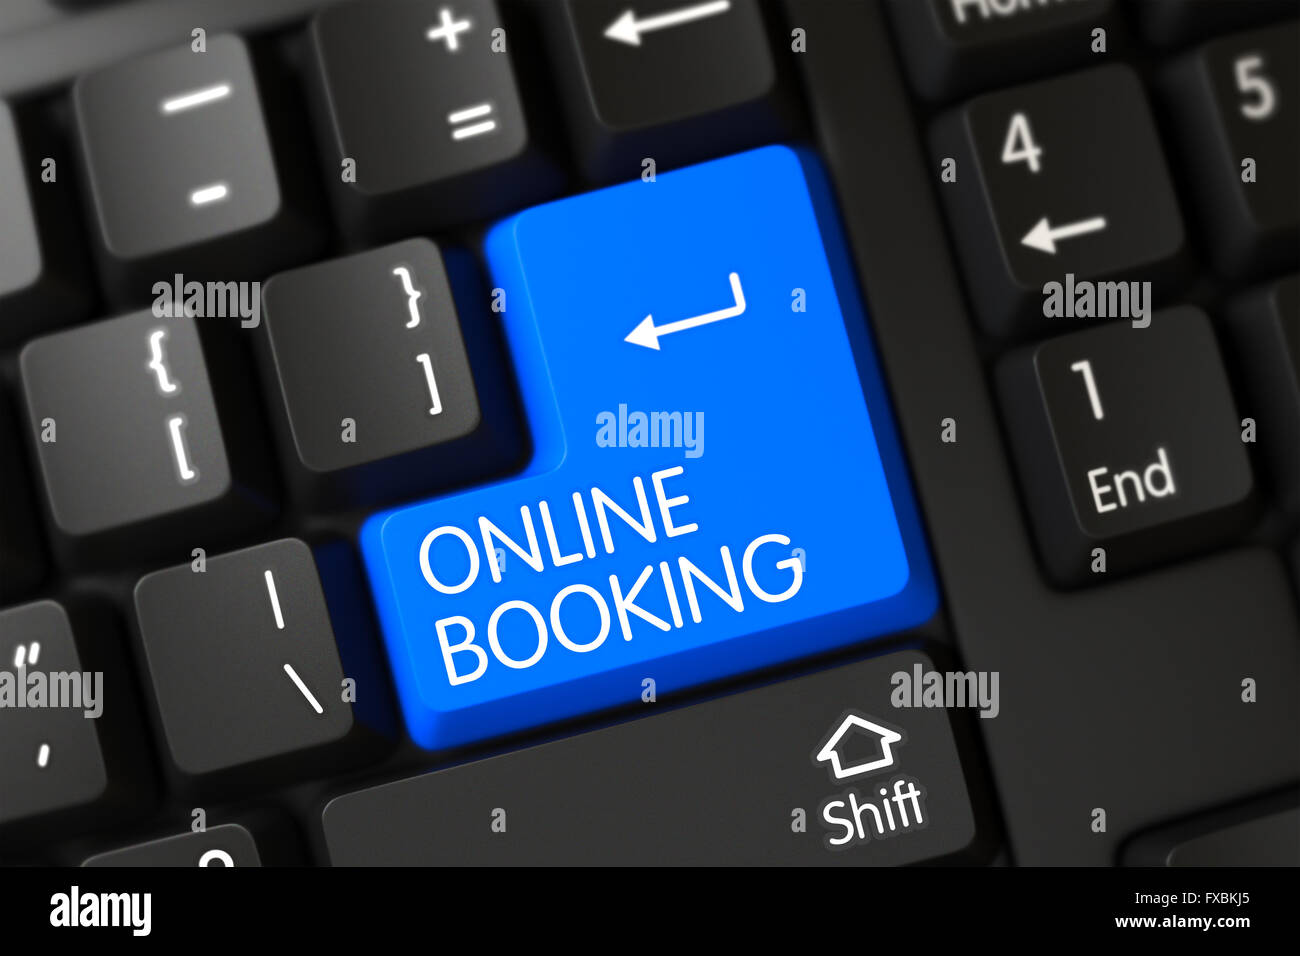 Keyboard with Blue Key - Online Booking. - Stock Image